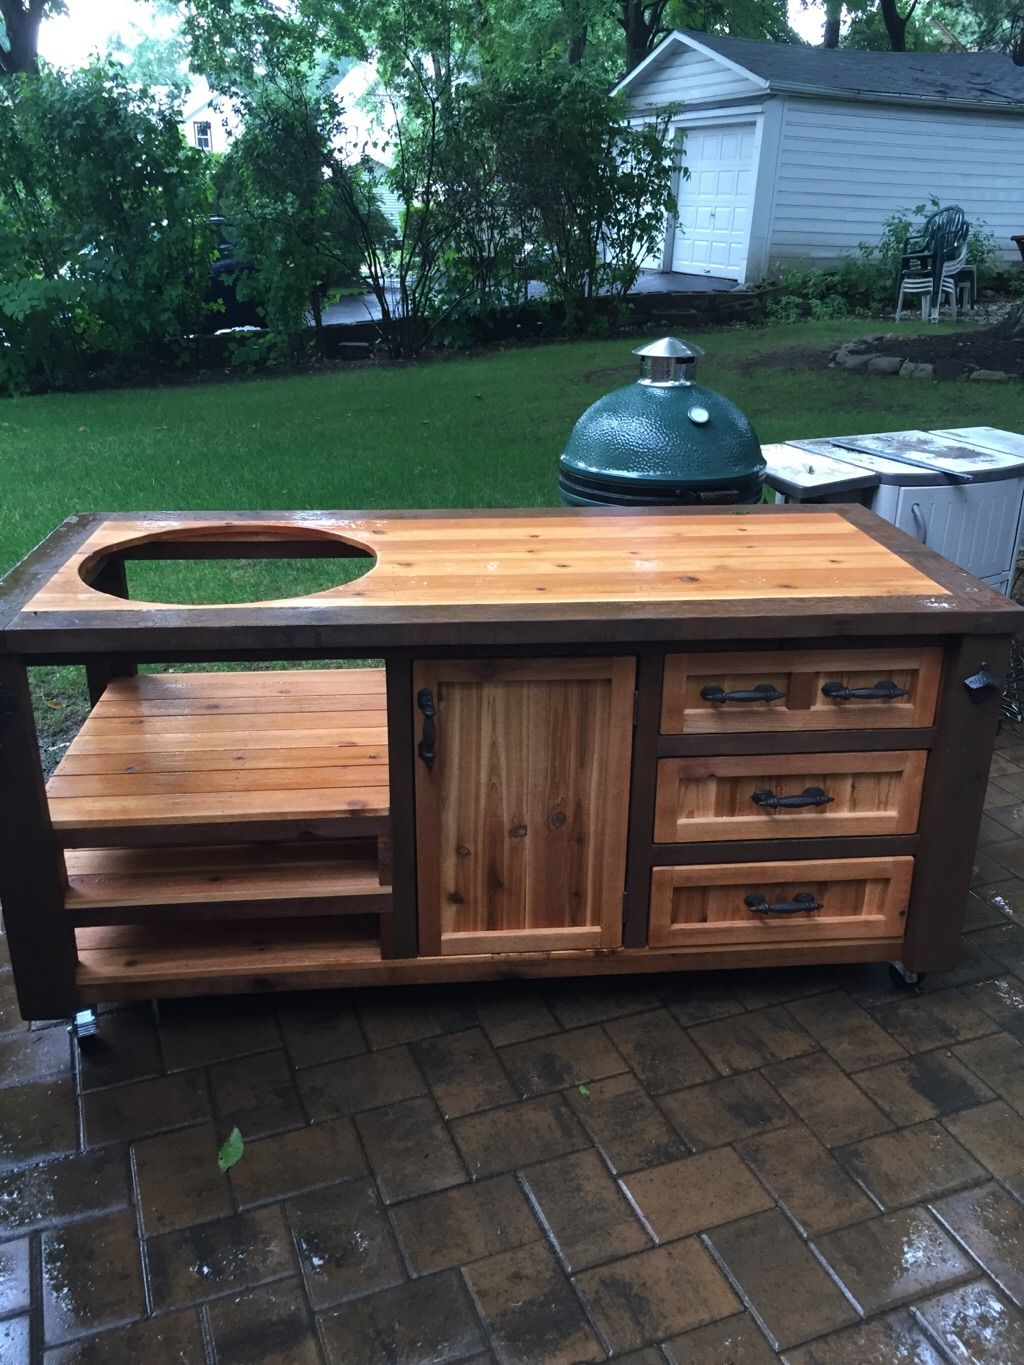 Grill Table Outdoor Grill Station Big Green Egg Outdoor Kitchen Grill Table